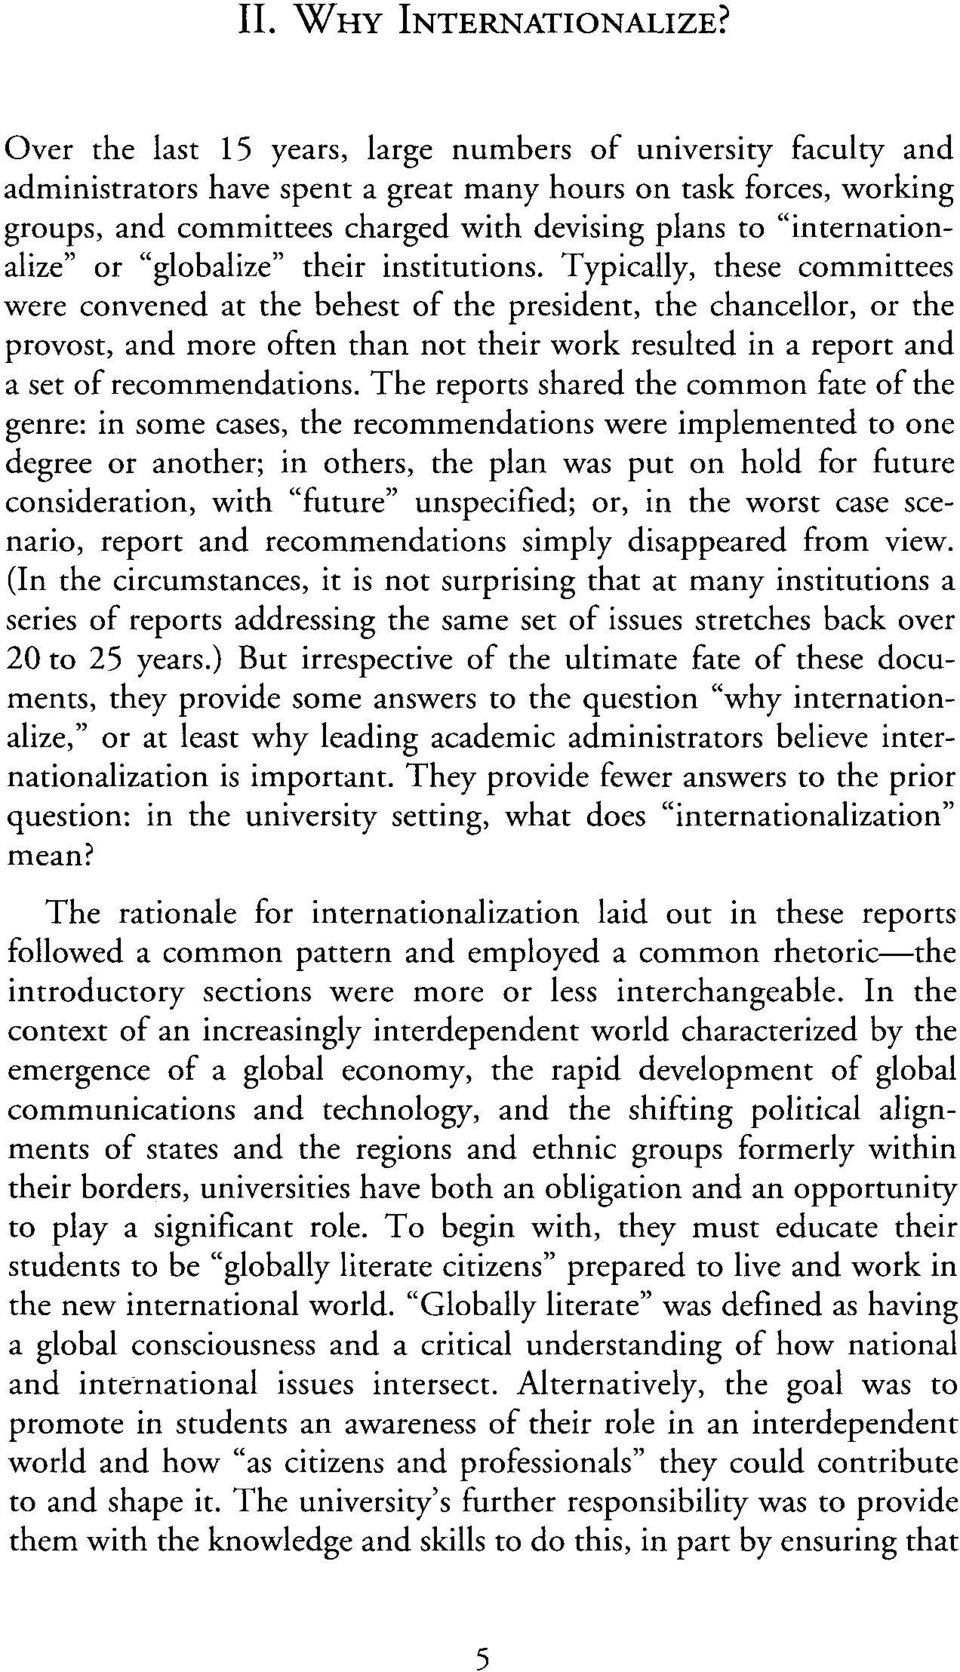 """internationalize"" or ""globalize"" their institutions."